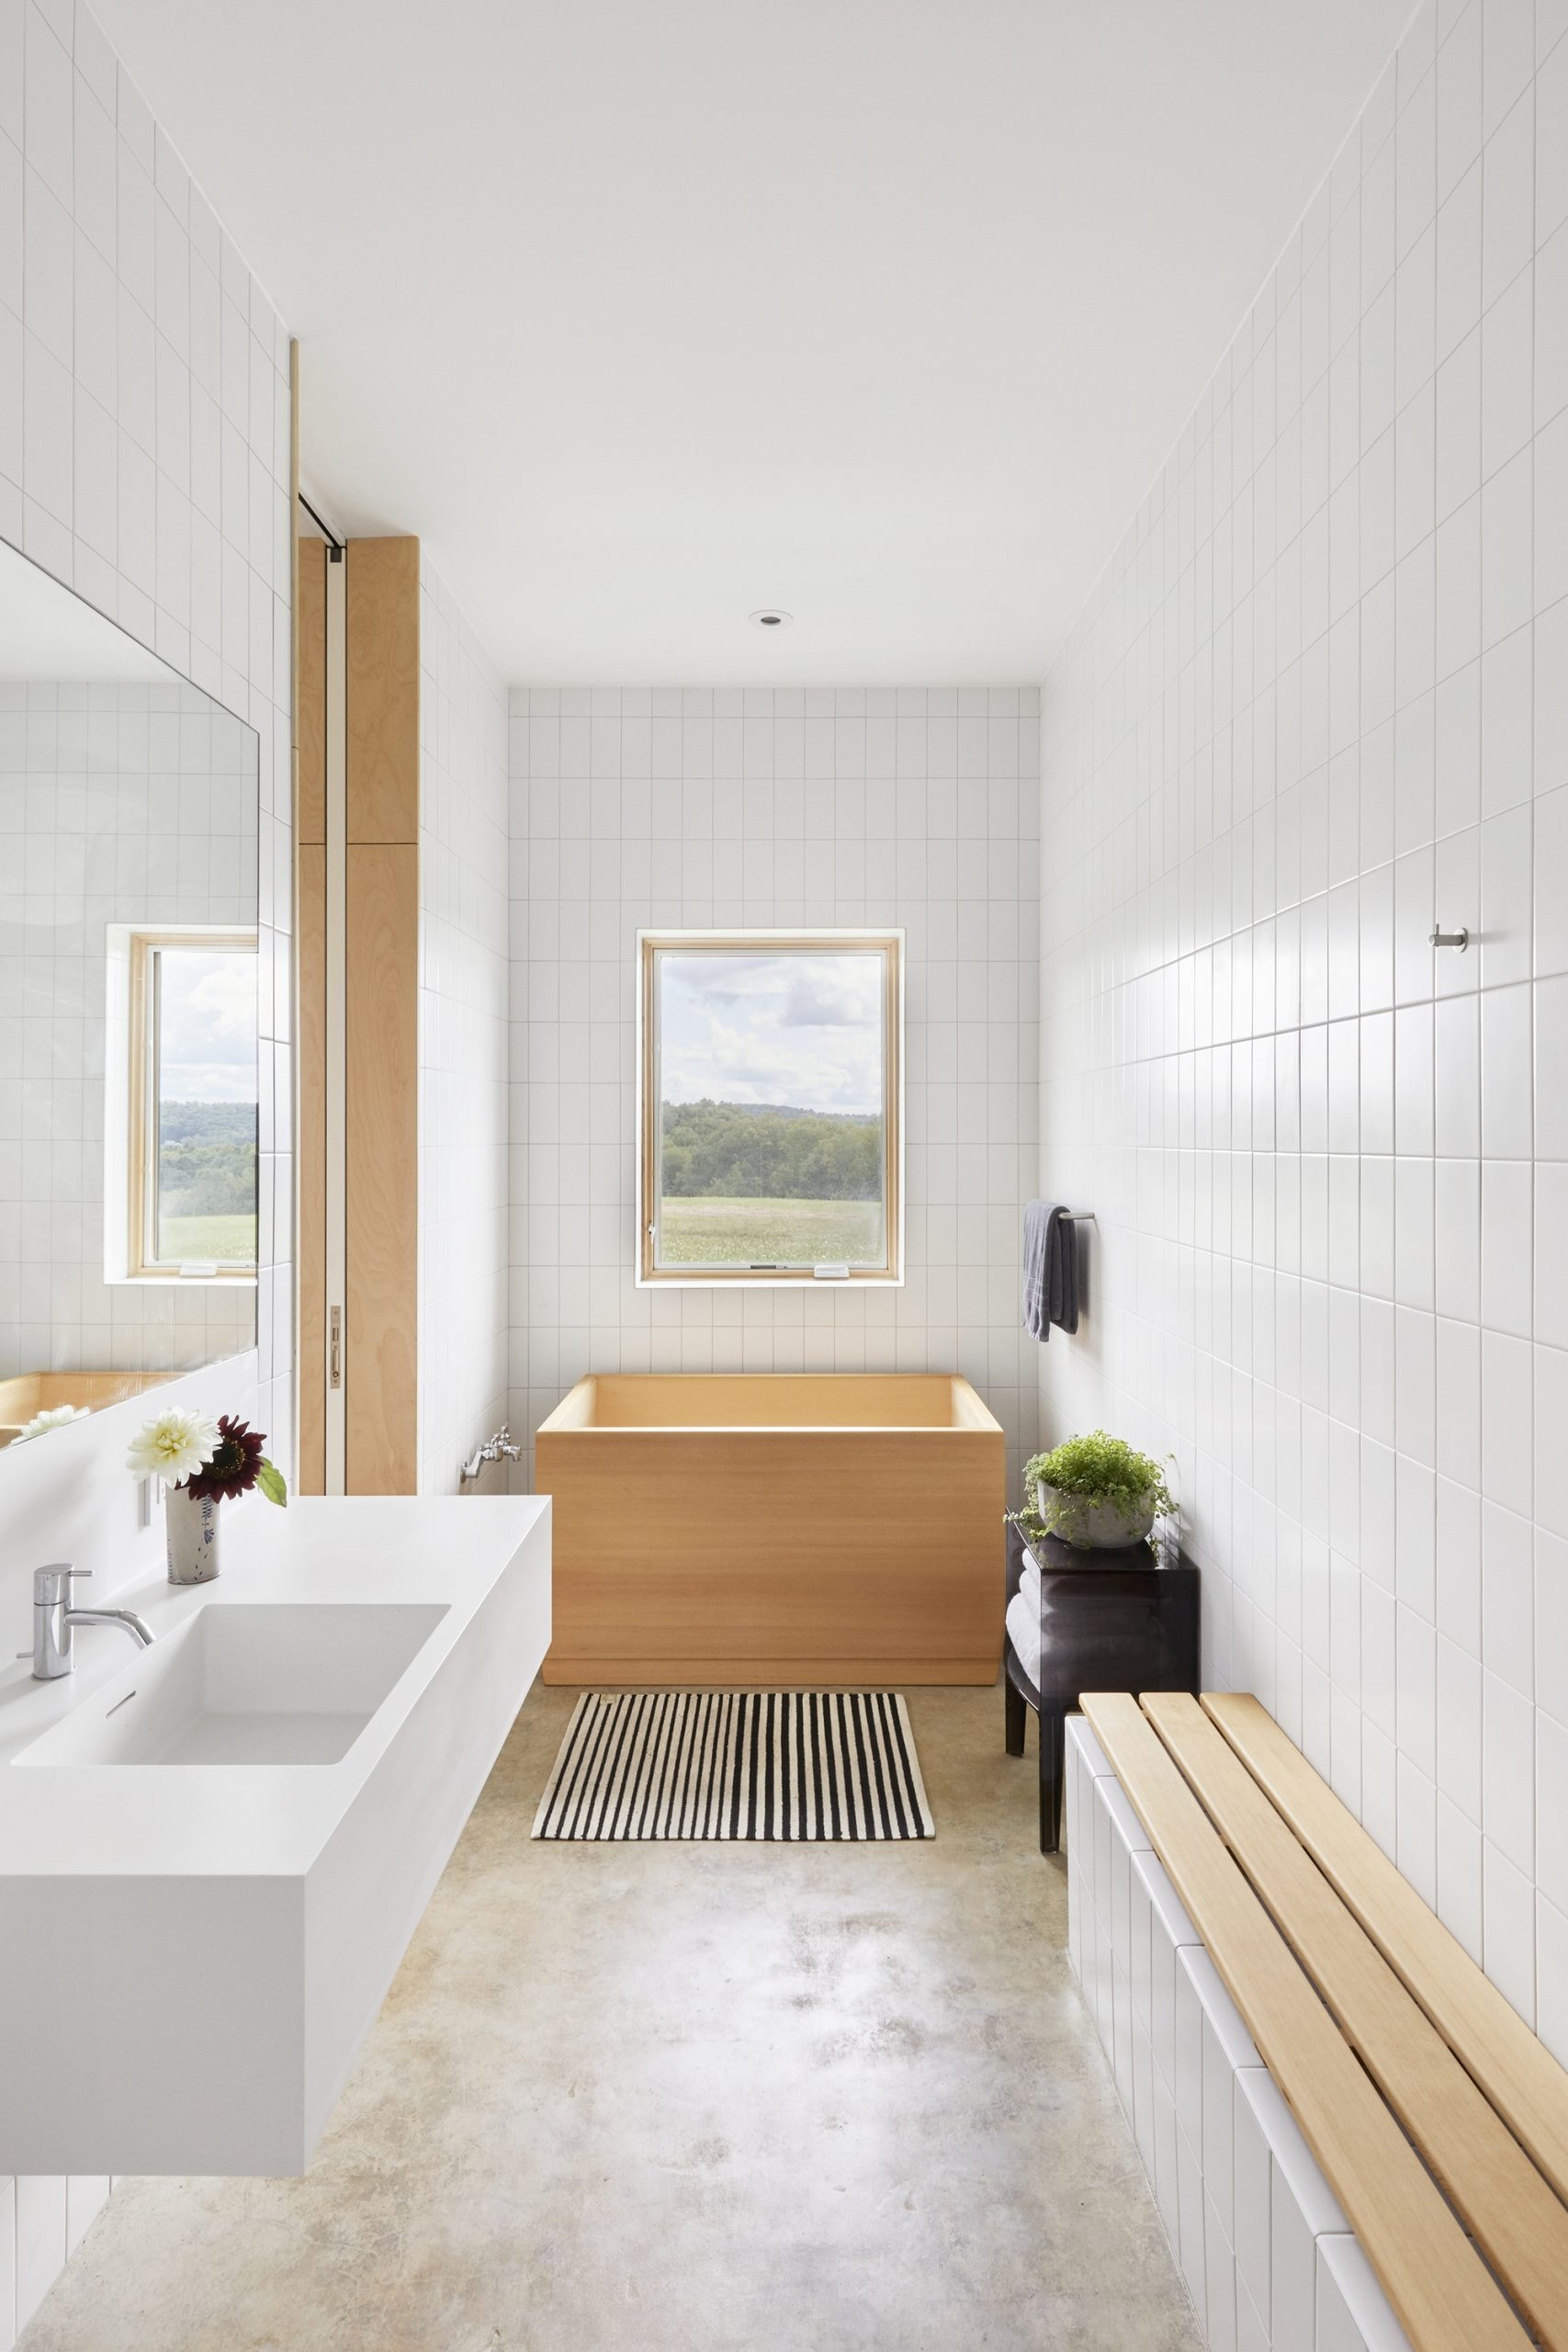 White Tiled Bathroom With A Wooden Bathtub And A View Of The 20+ Bathroom Design Livingston Inspirations